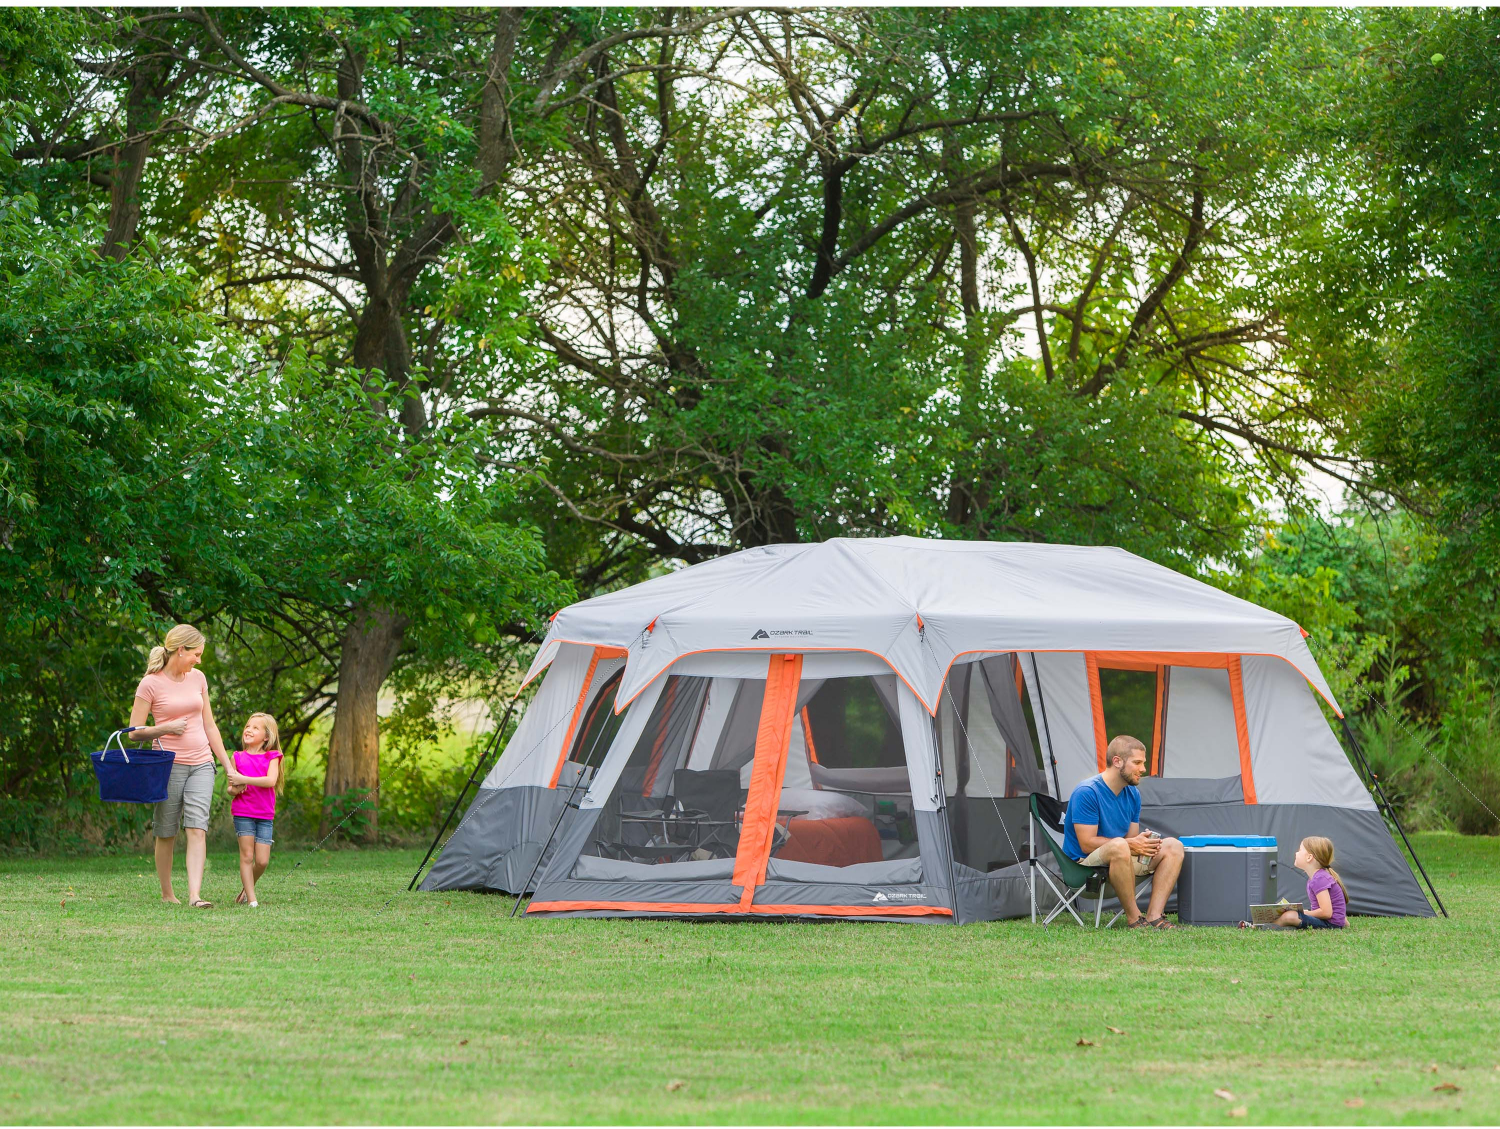 12 Person Instant Cabin 20 X 18 Tent 3 Room Camping